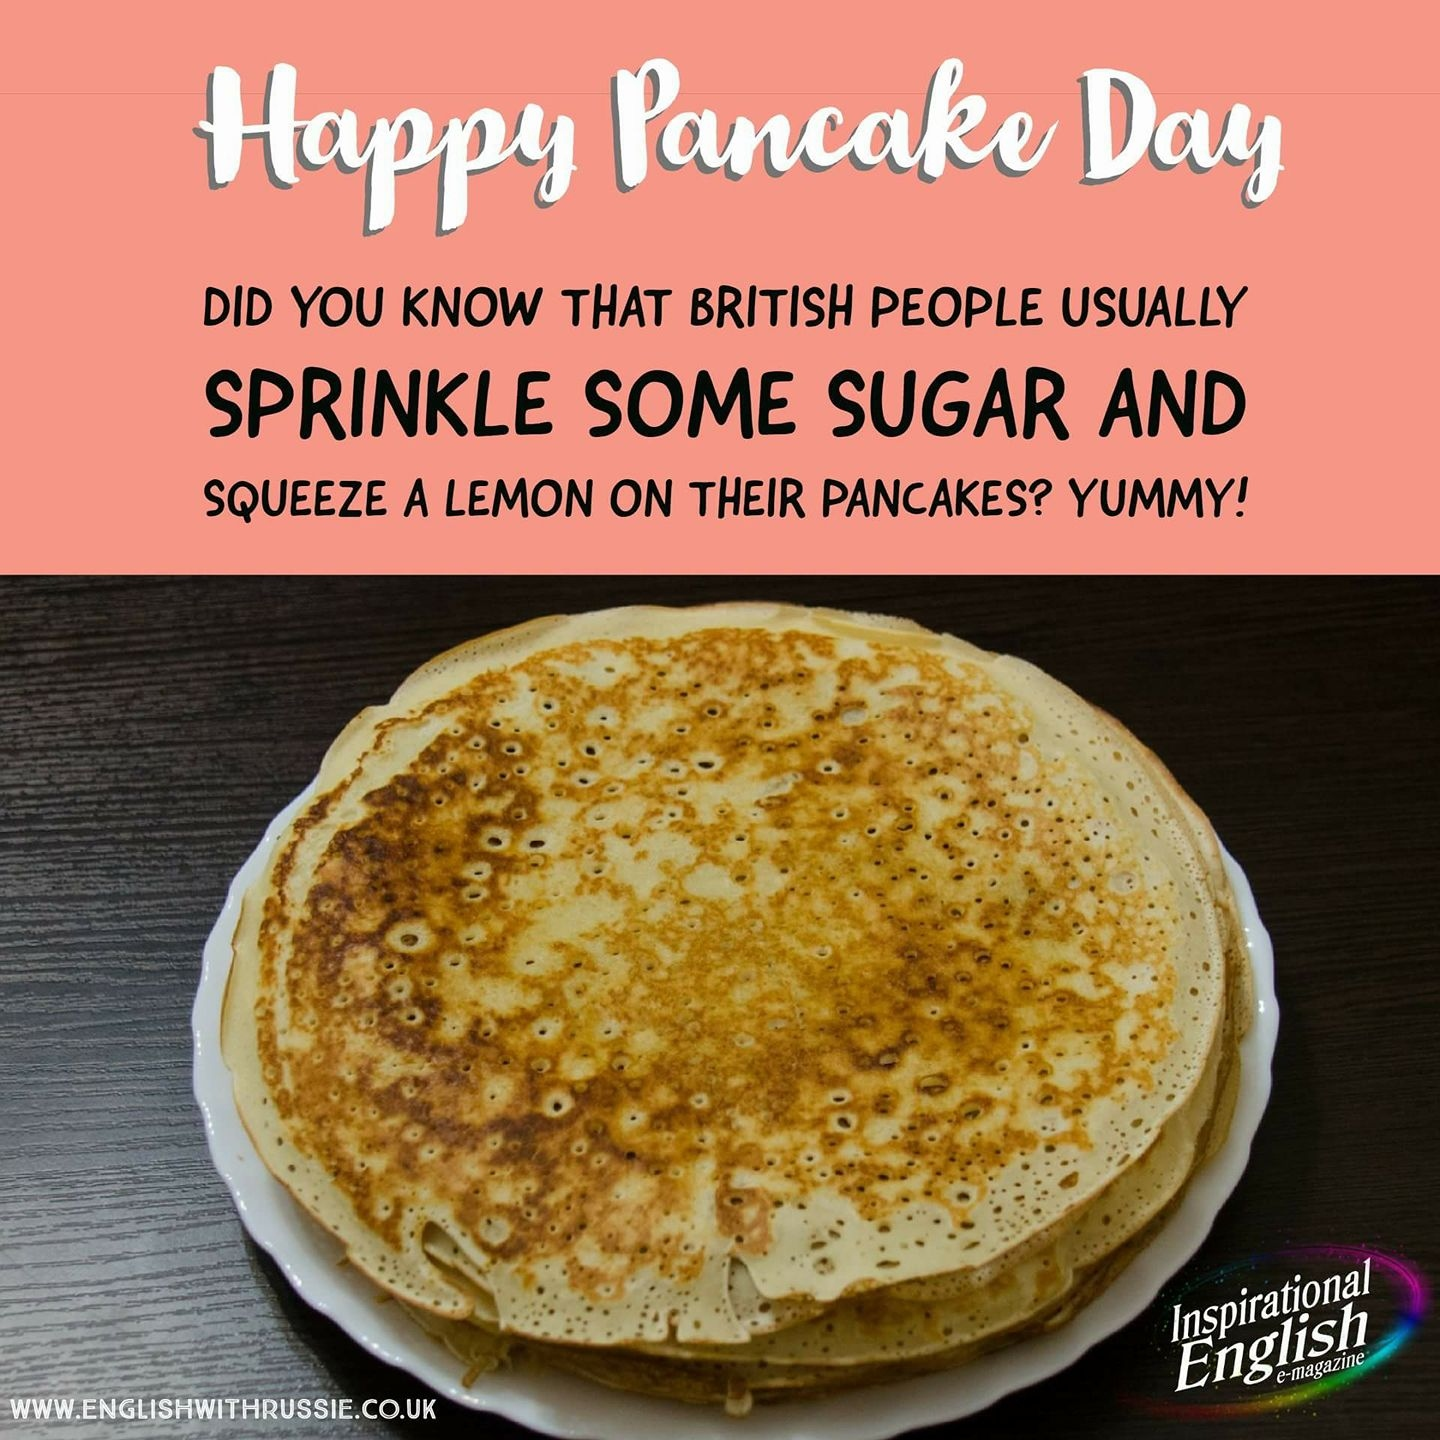 Yummy Pancake Day!